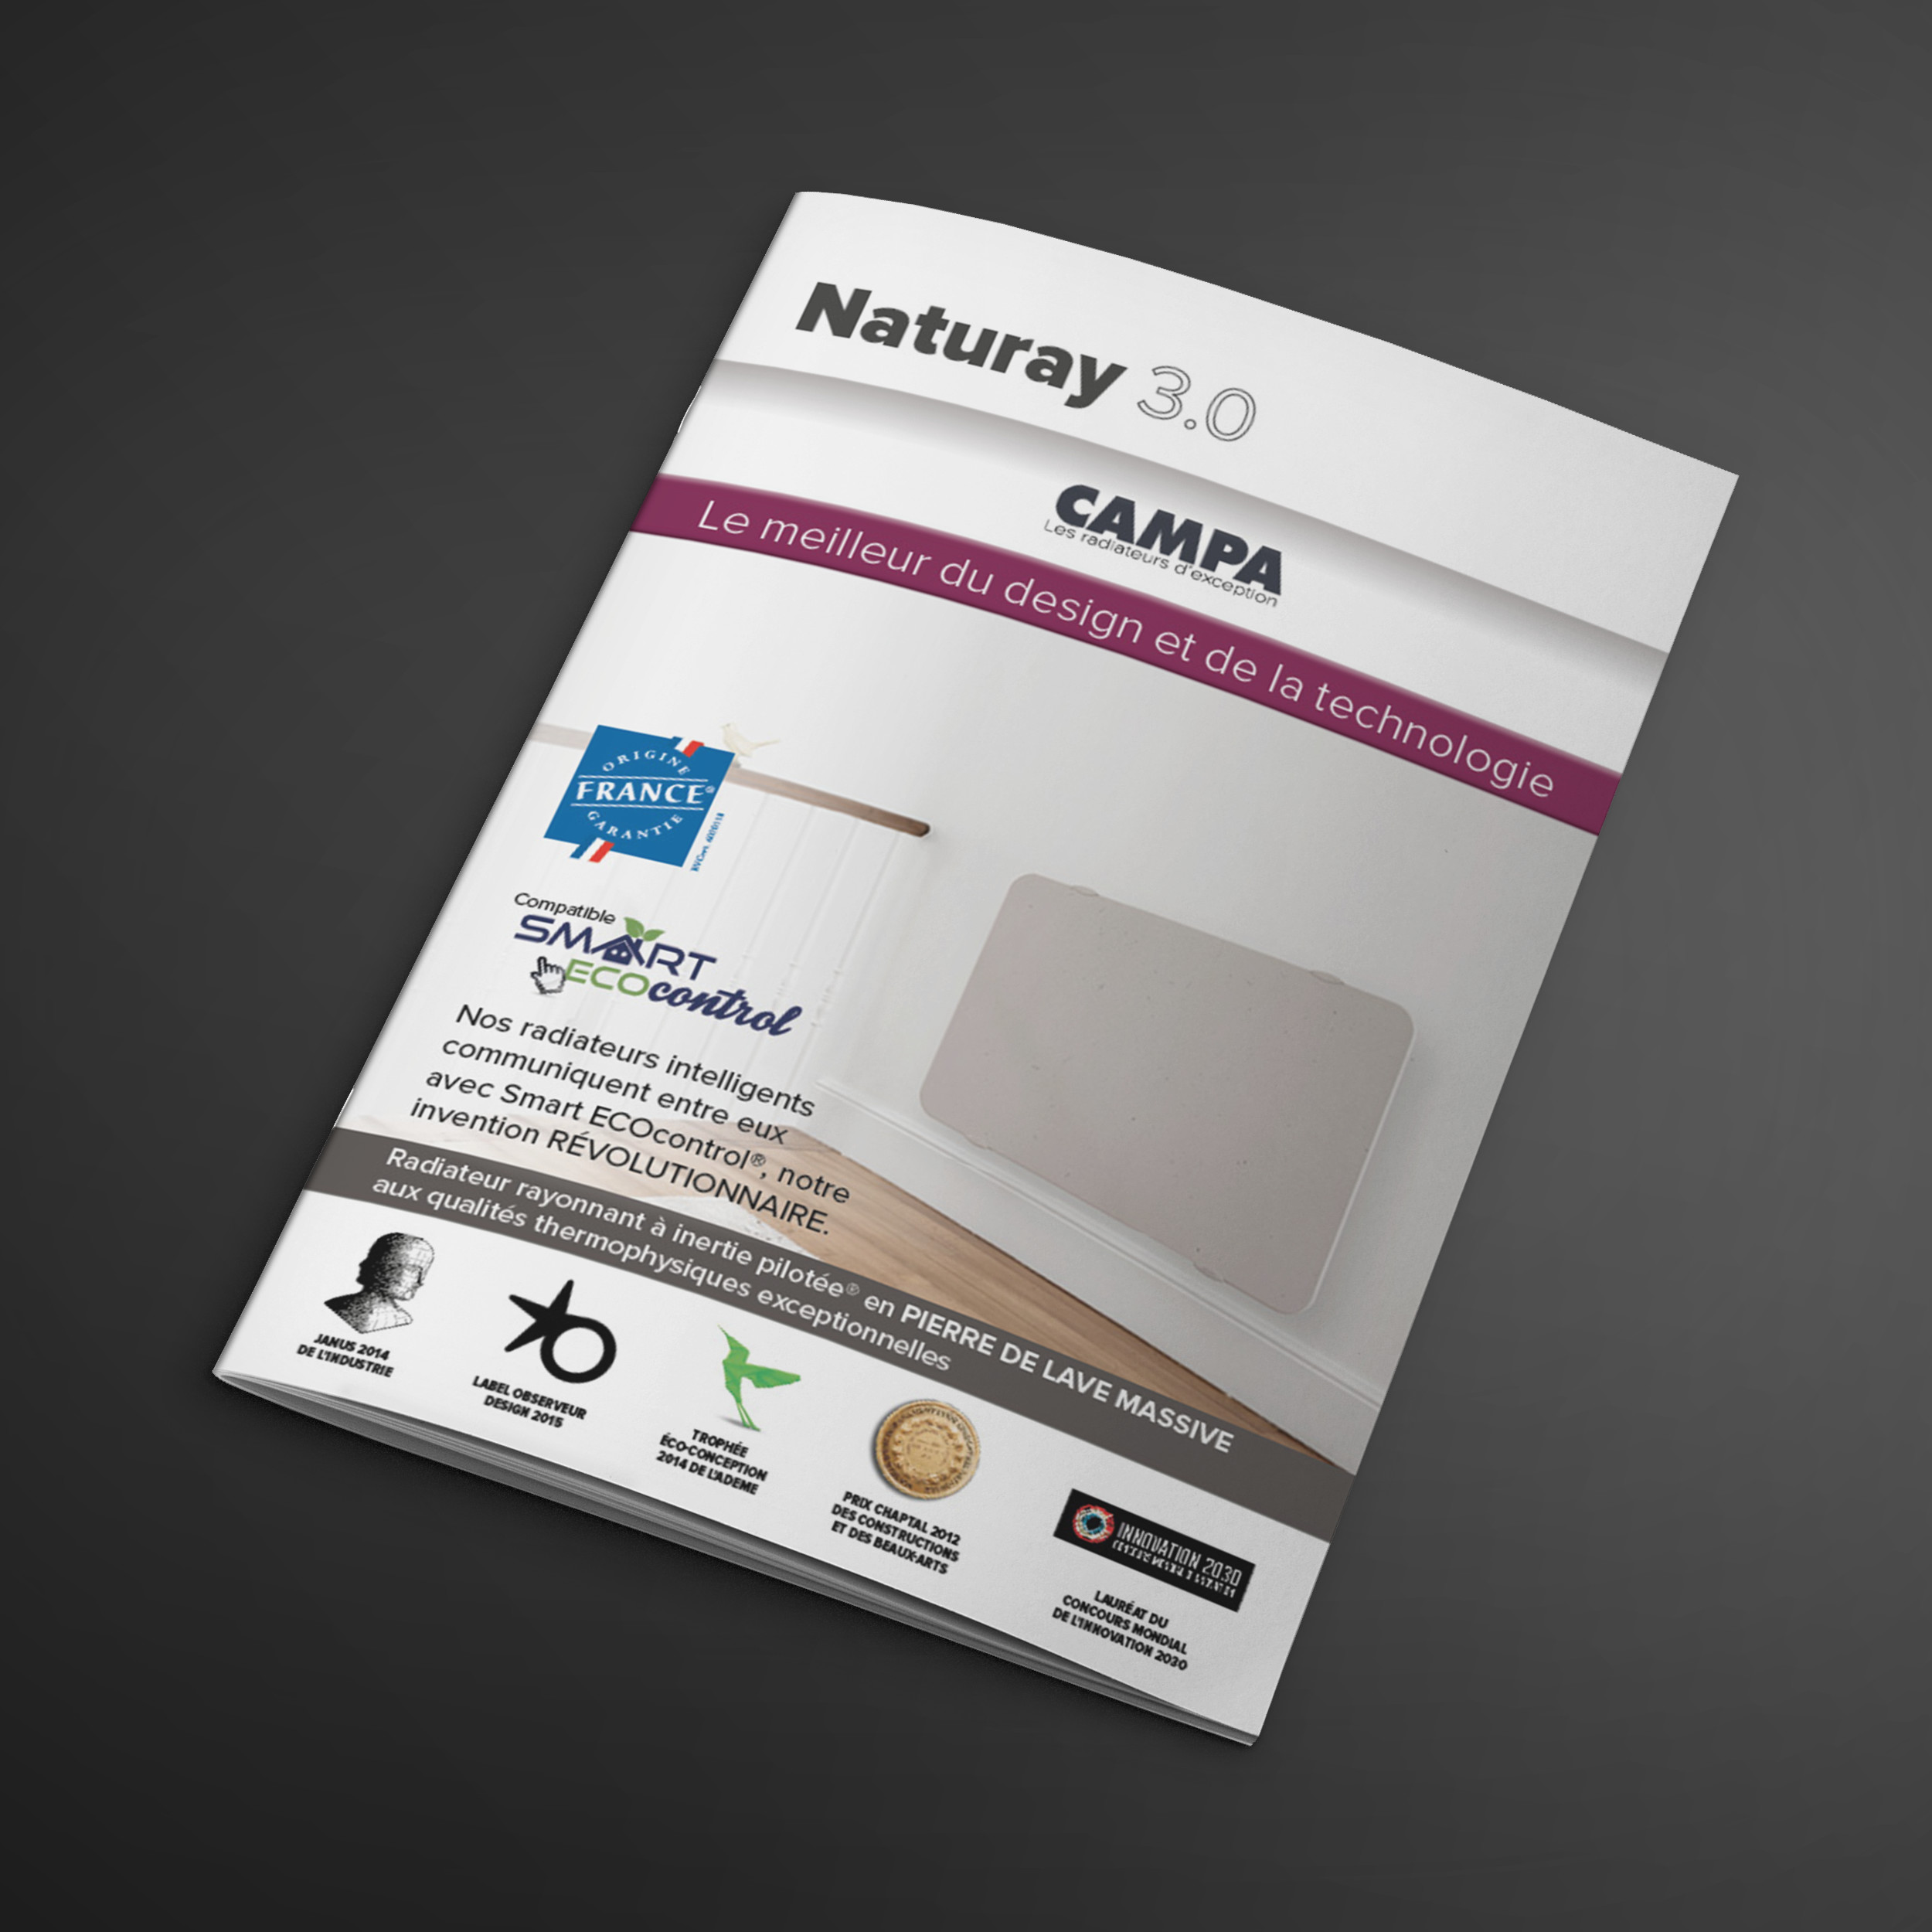 NATURAY ULTIME 3.0